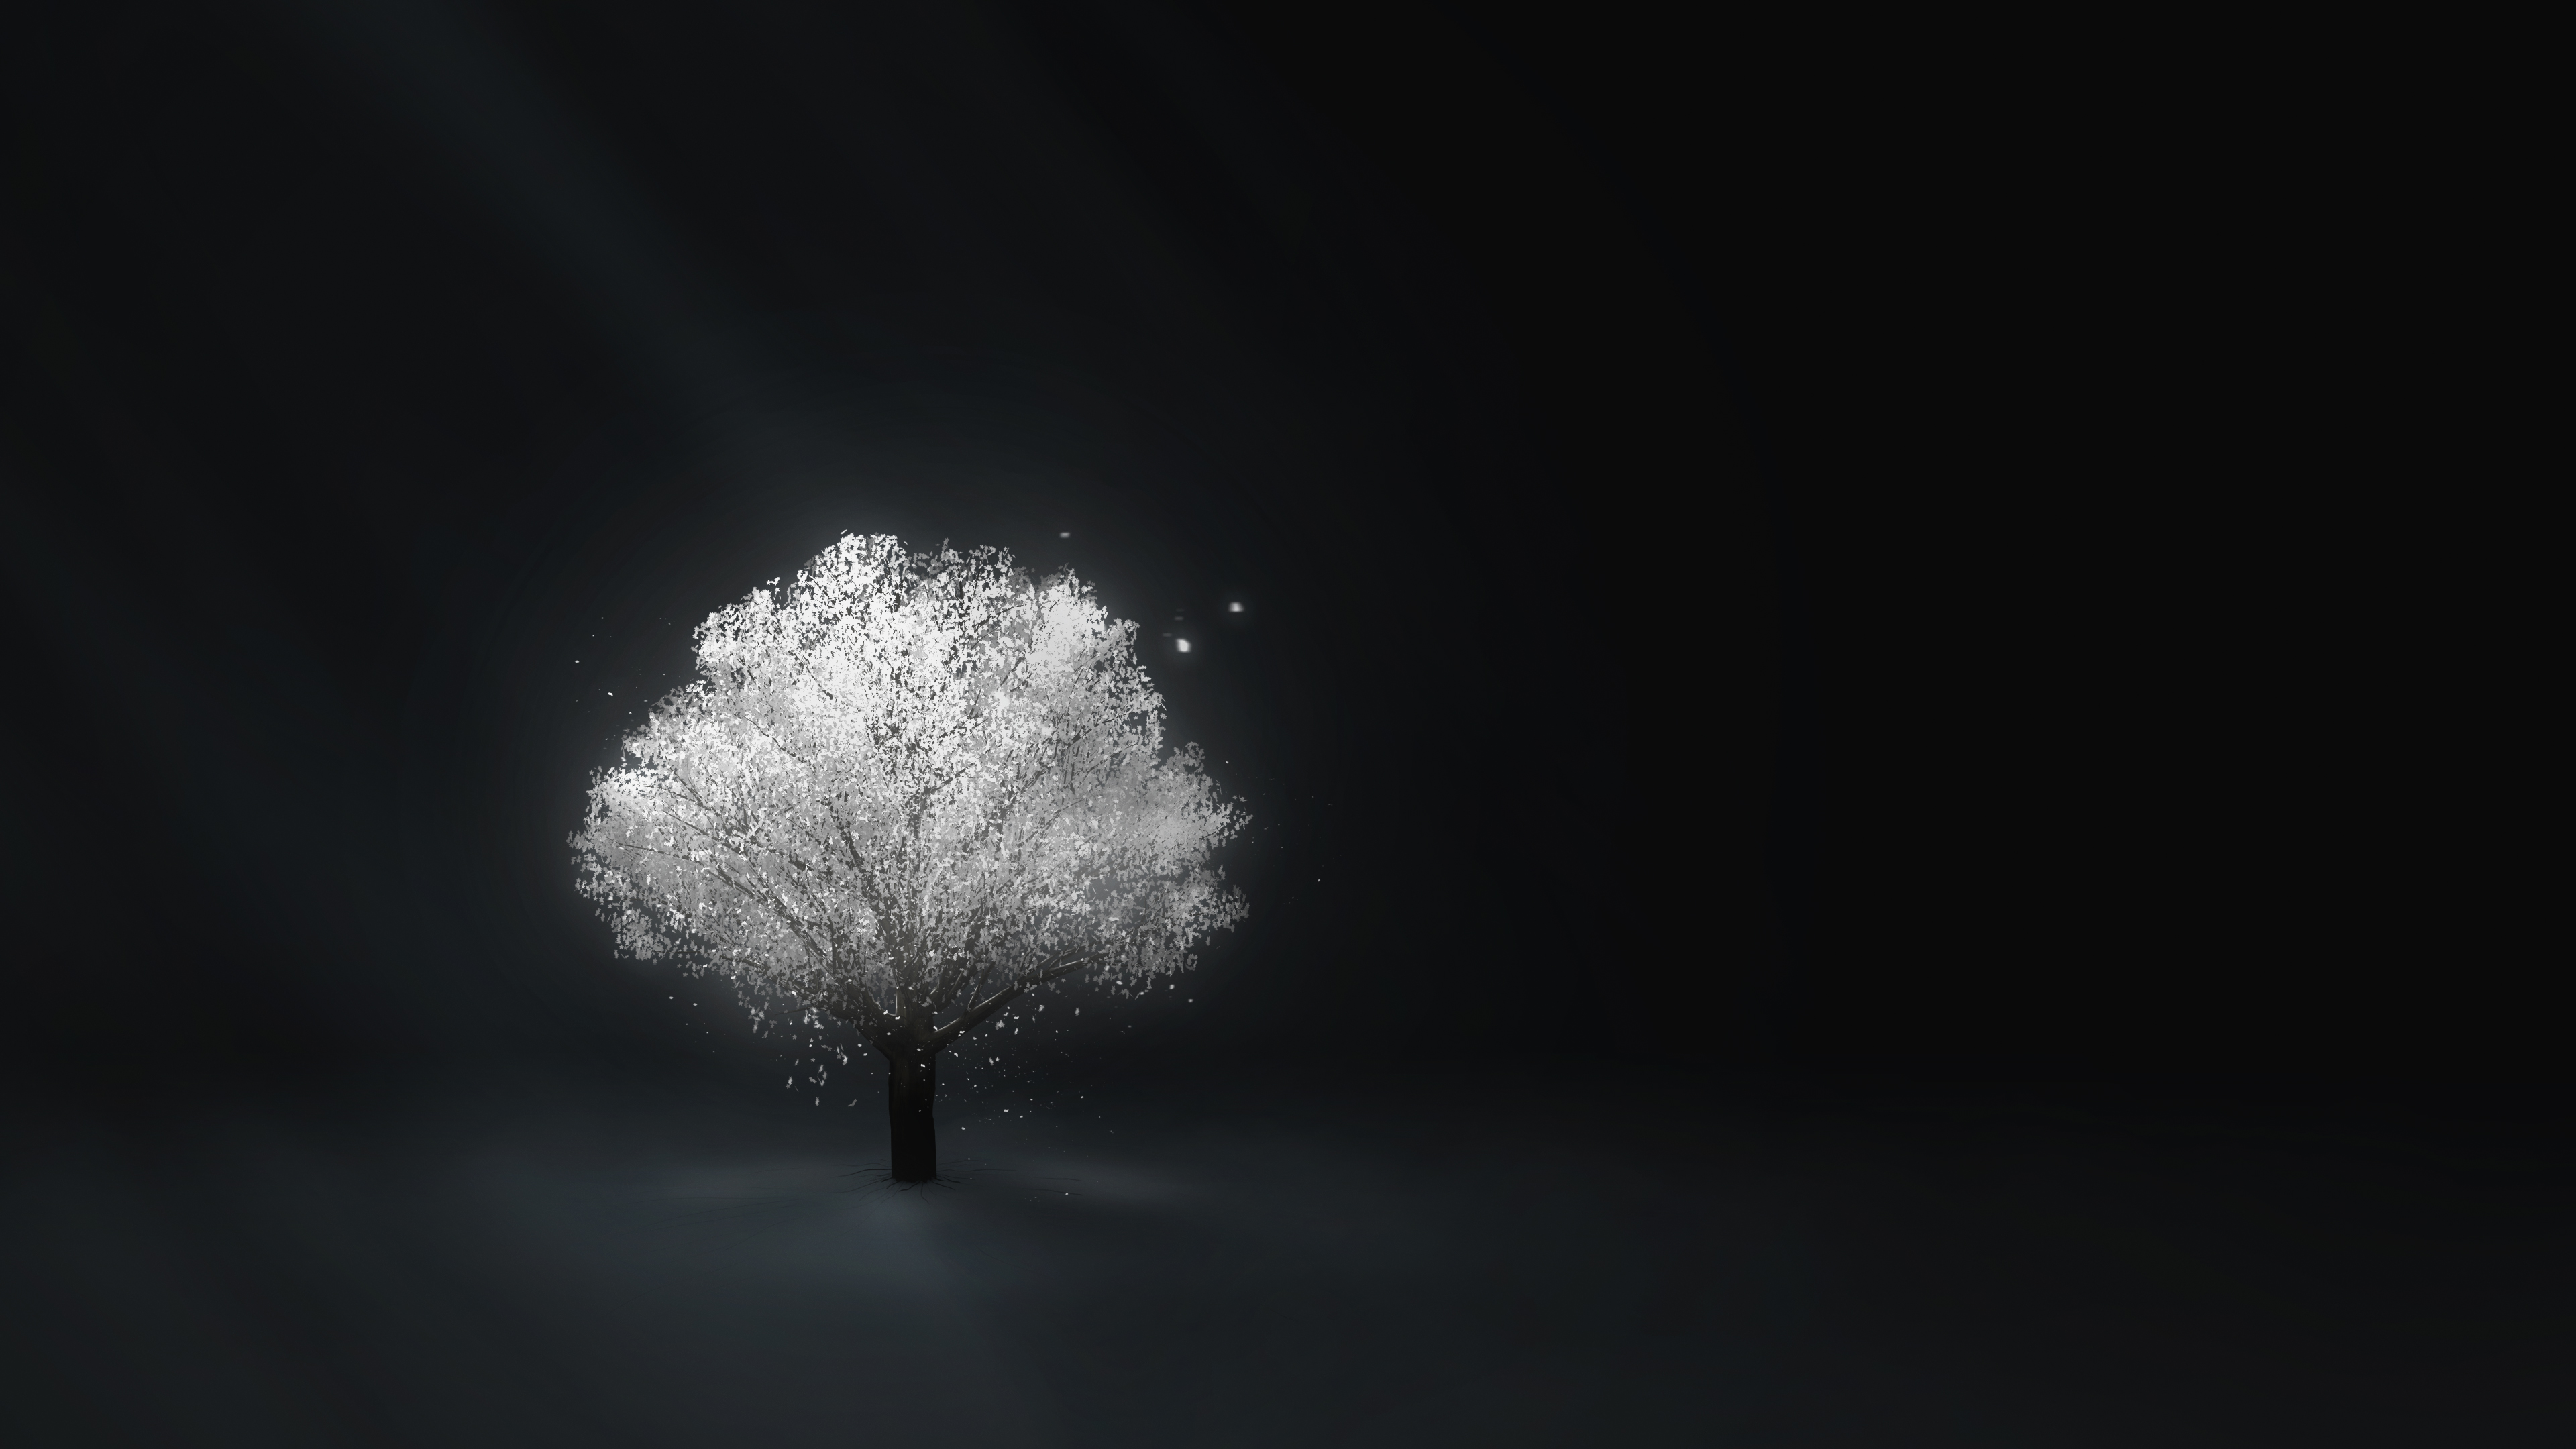 The tree that glow in the darkest place